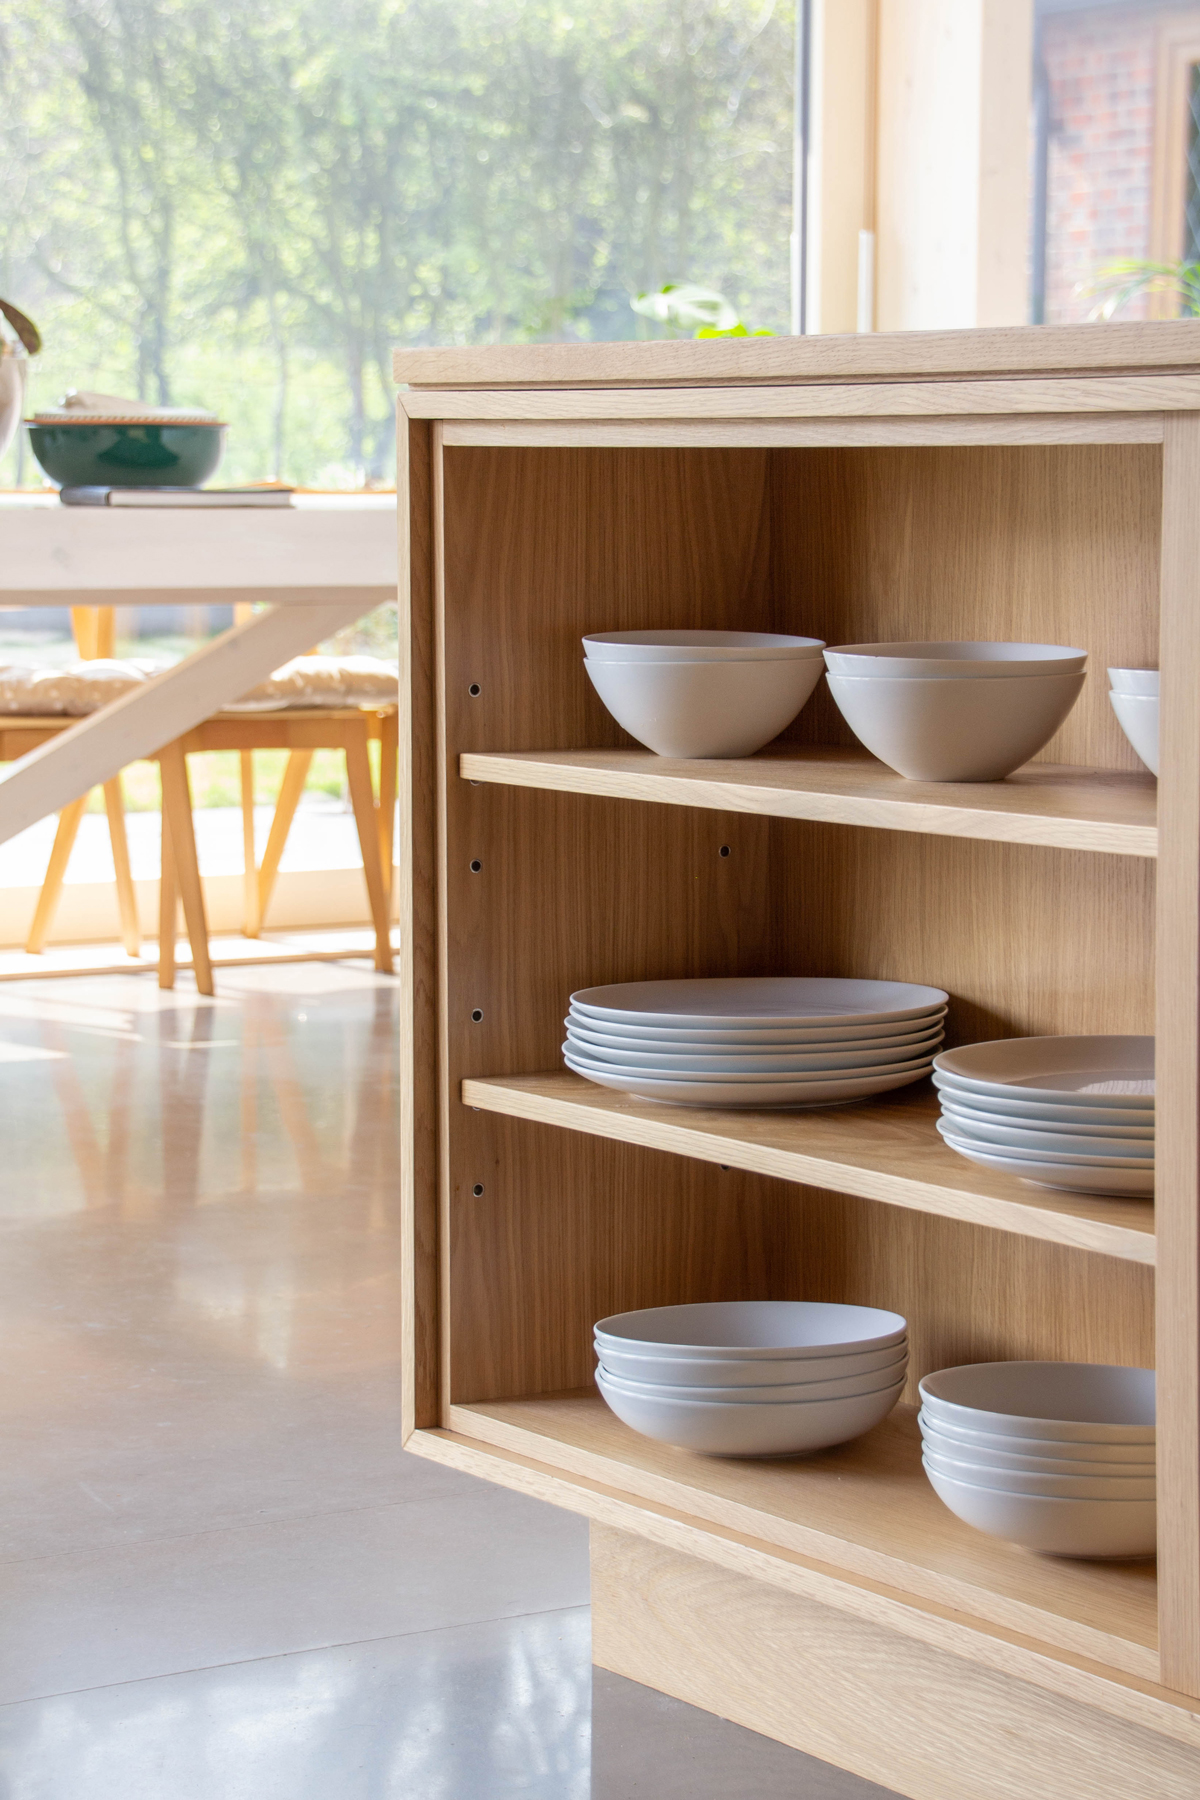 KITCHEN TREND: NATURAL TIMBER